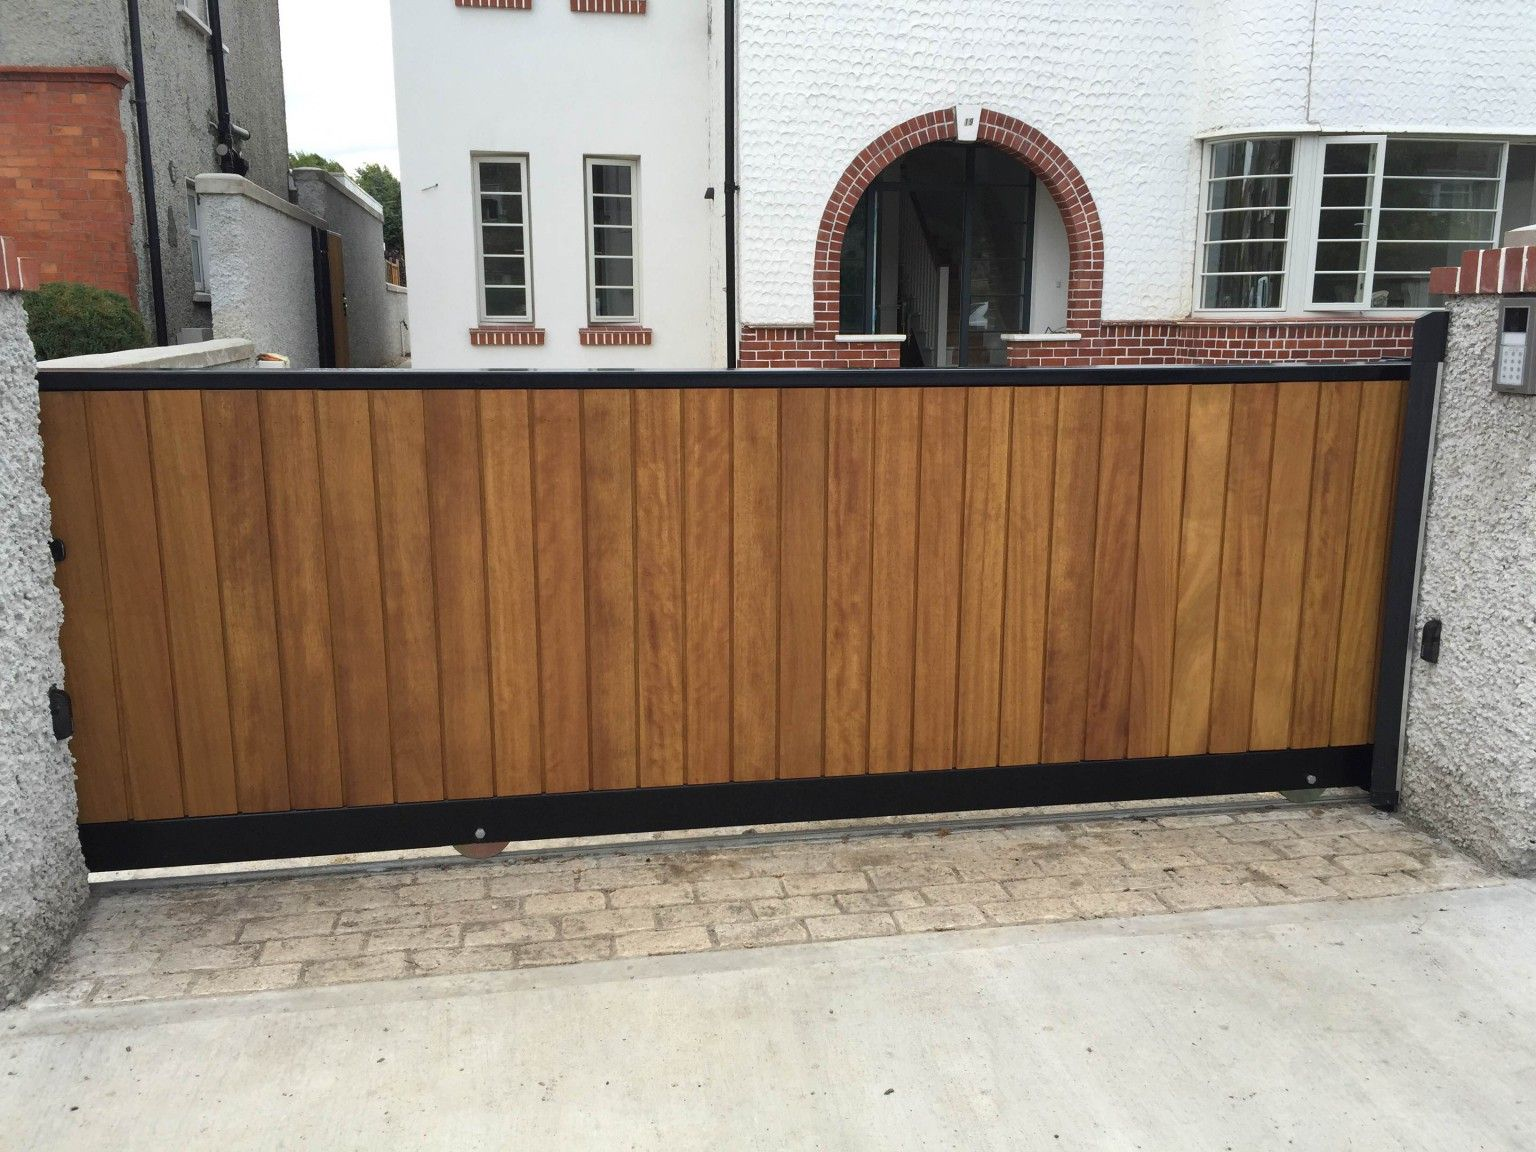 Irish Fencing and Railings- K02- Timber Domestic Gates 08 (14)